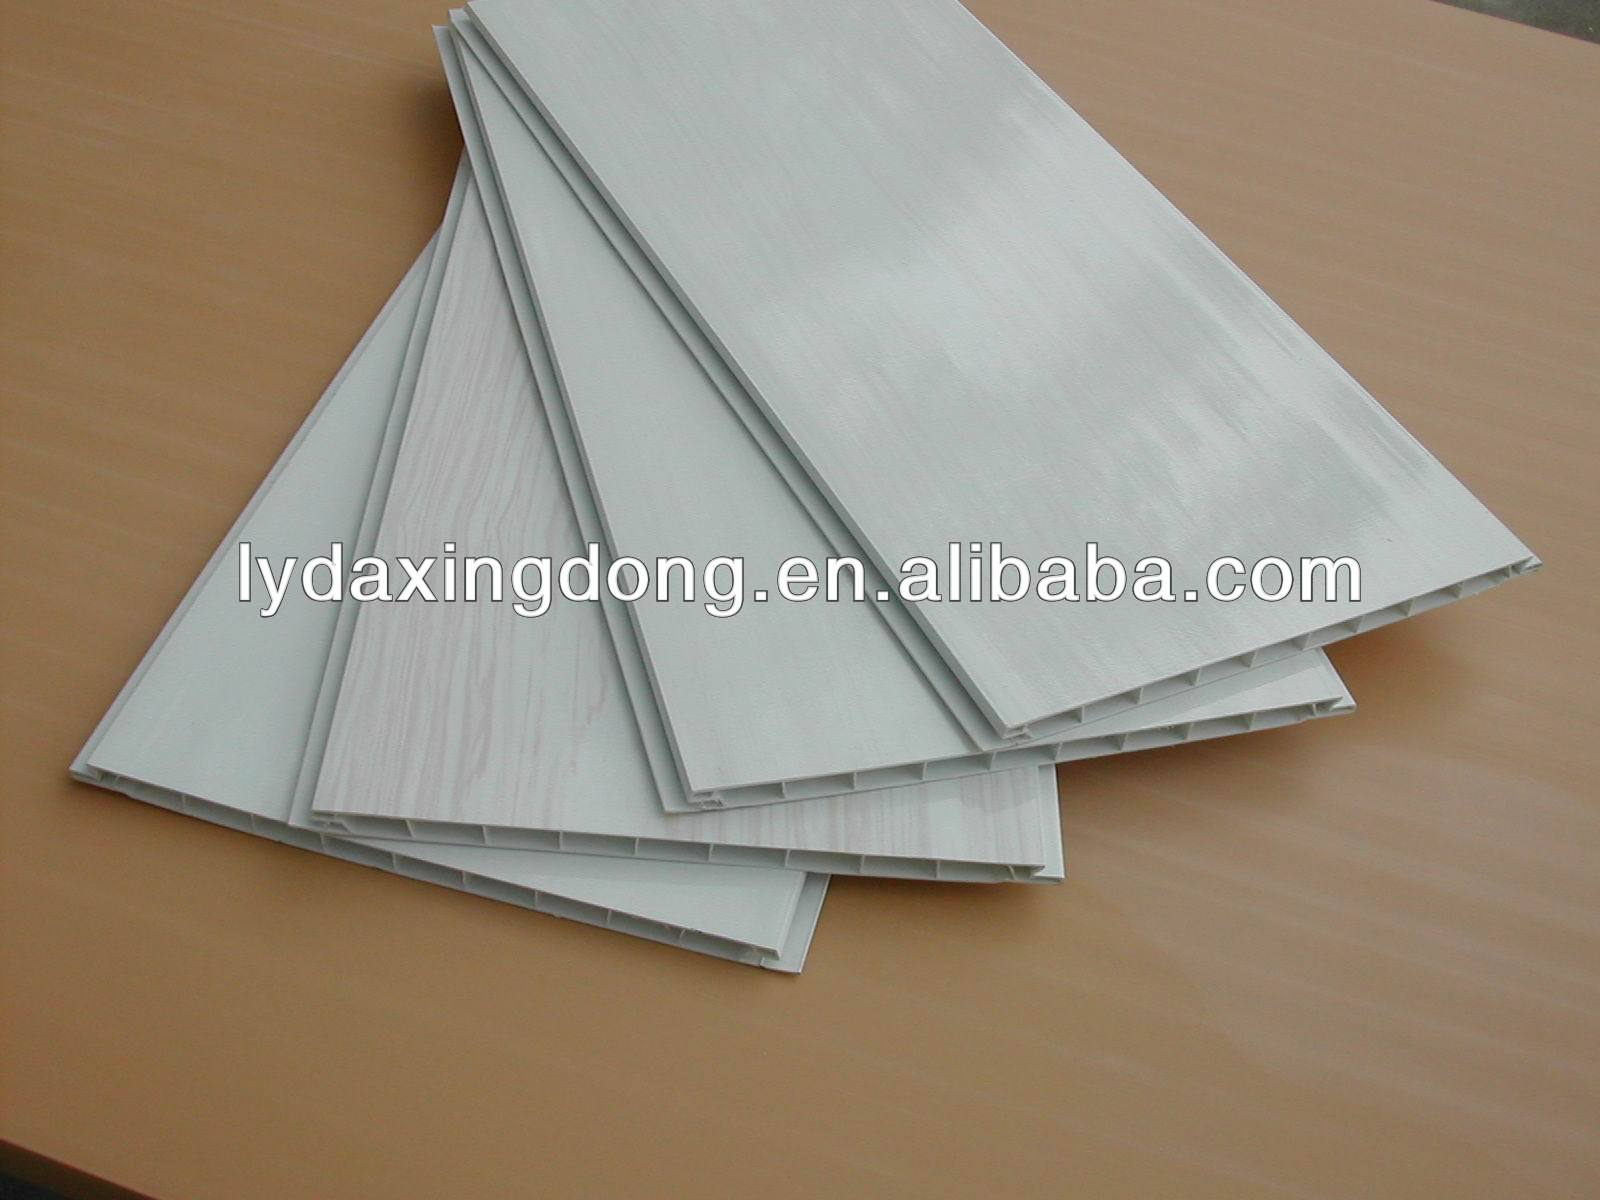 Plastic waterproof Shower Wall Panels for Bathroom wall siding panel